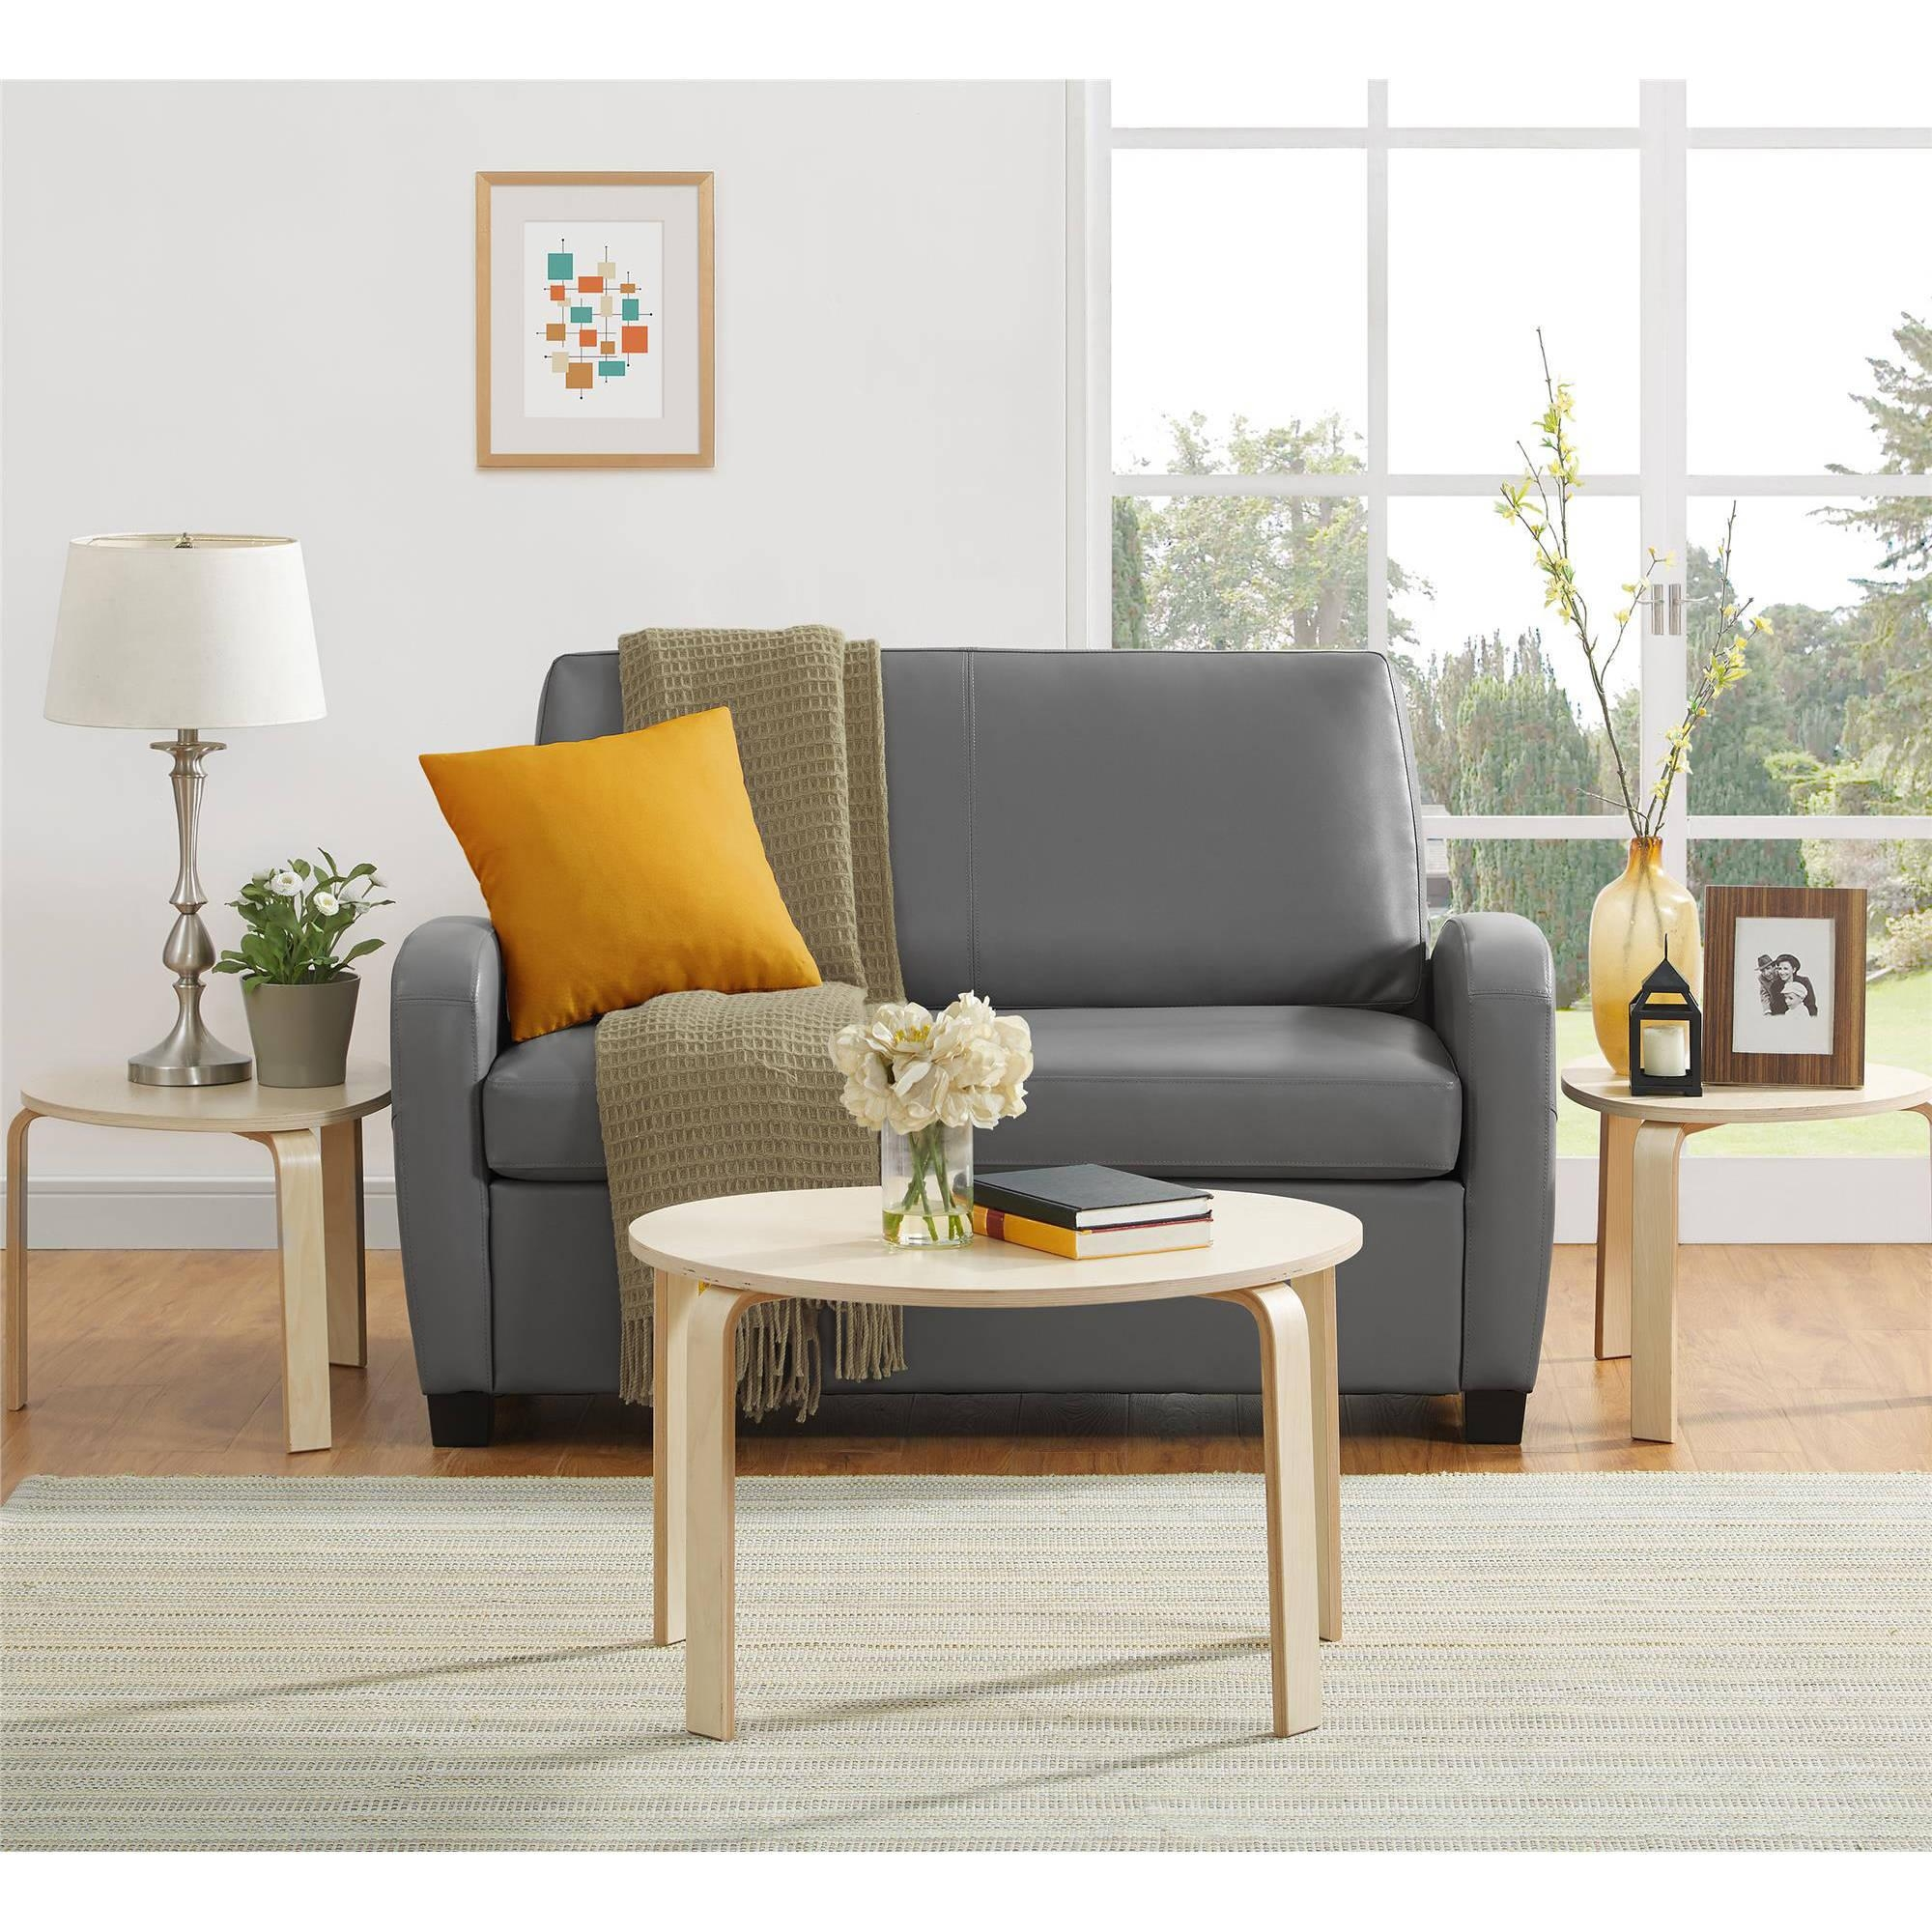 Mainstays Sofa Sleeper, Black – Walmart Inside Mainstays Sleeper Sofas (View 14 of 20)